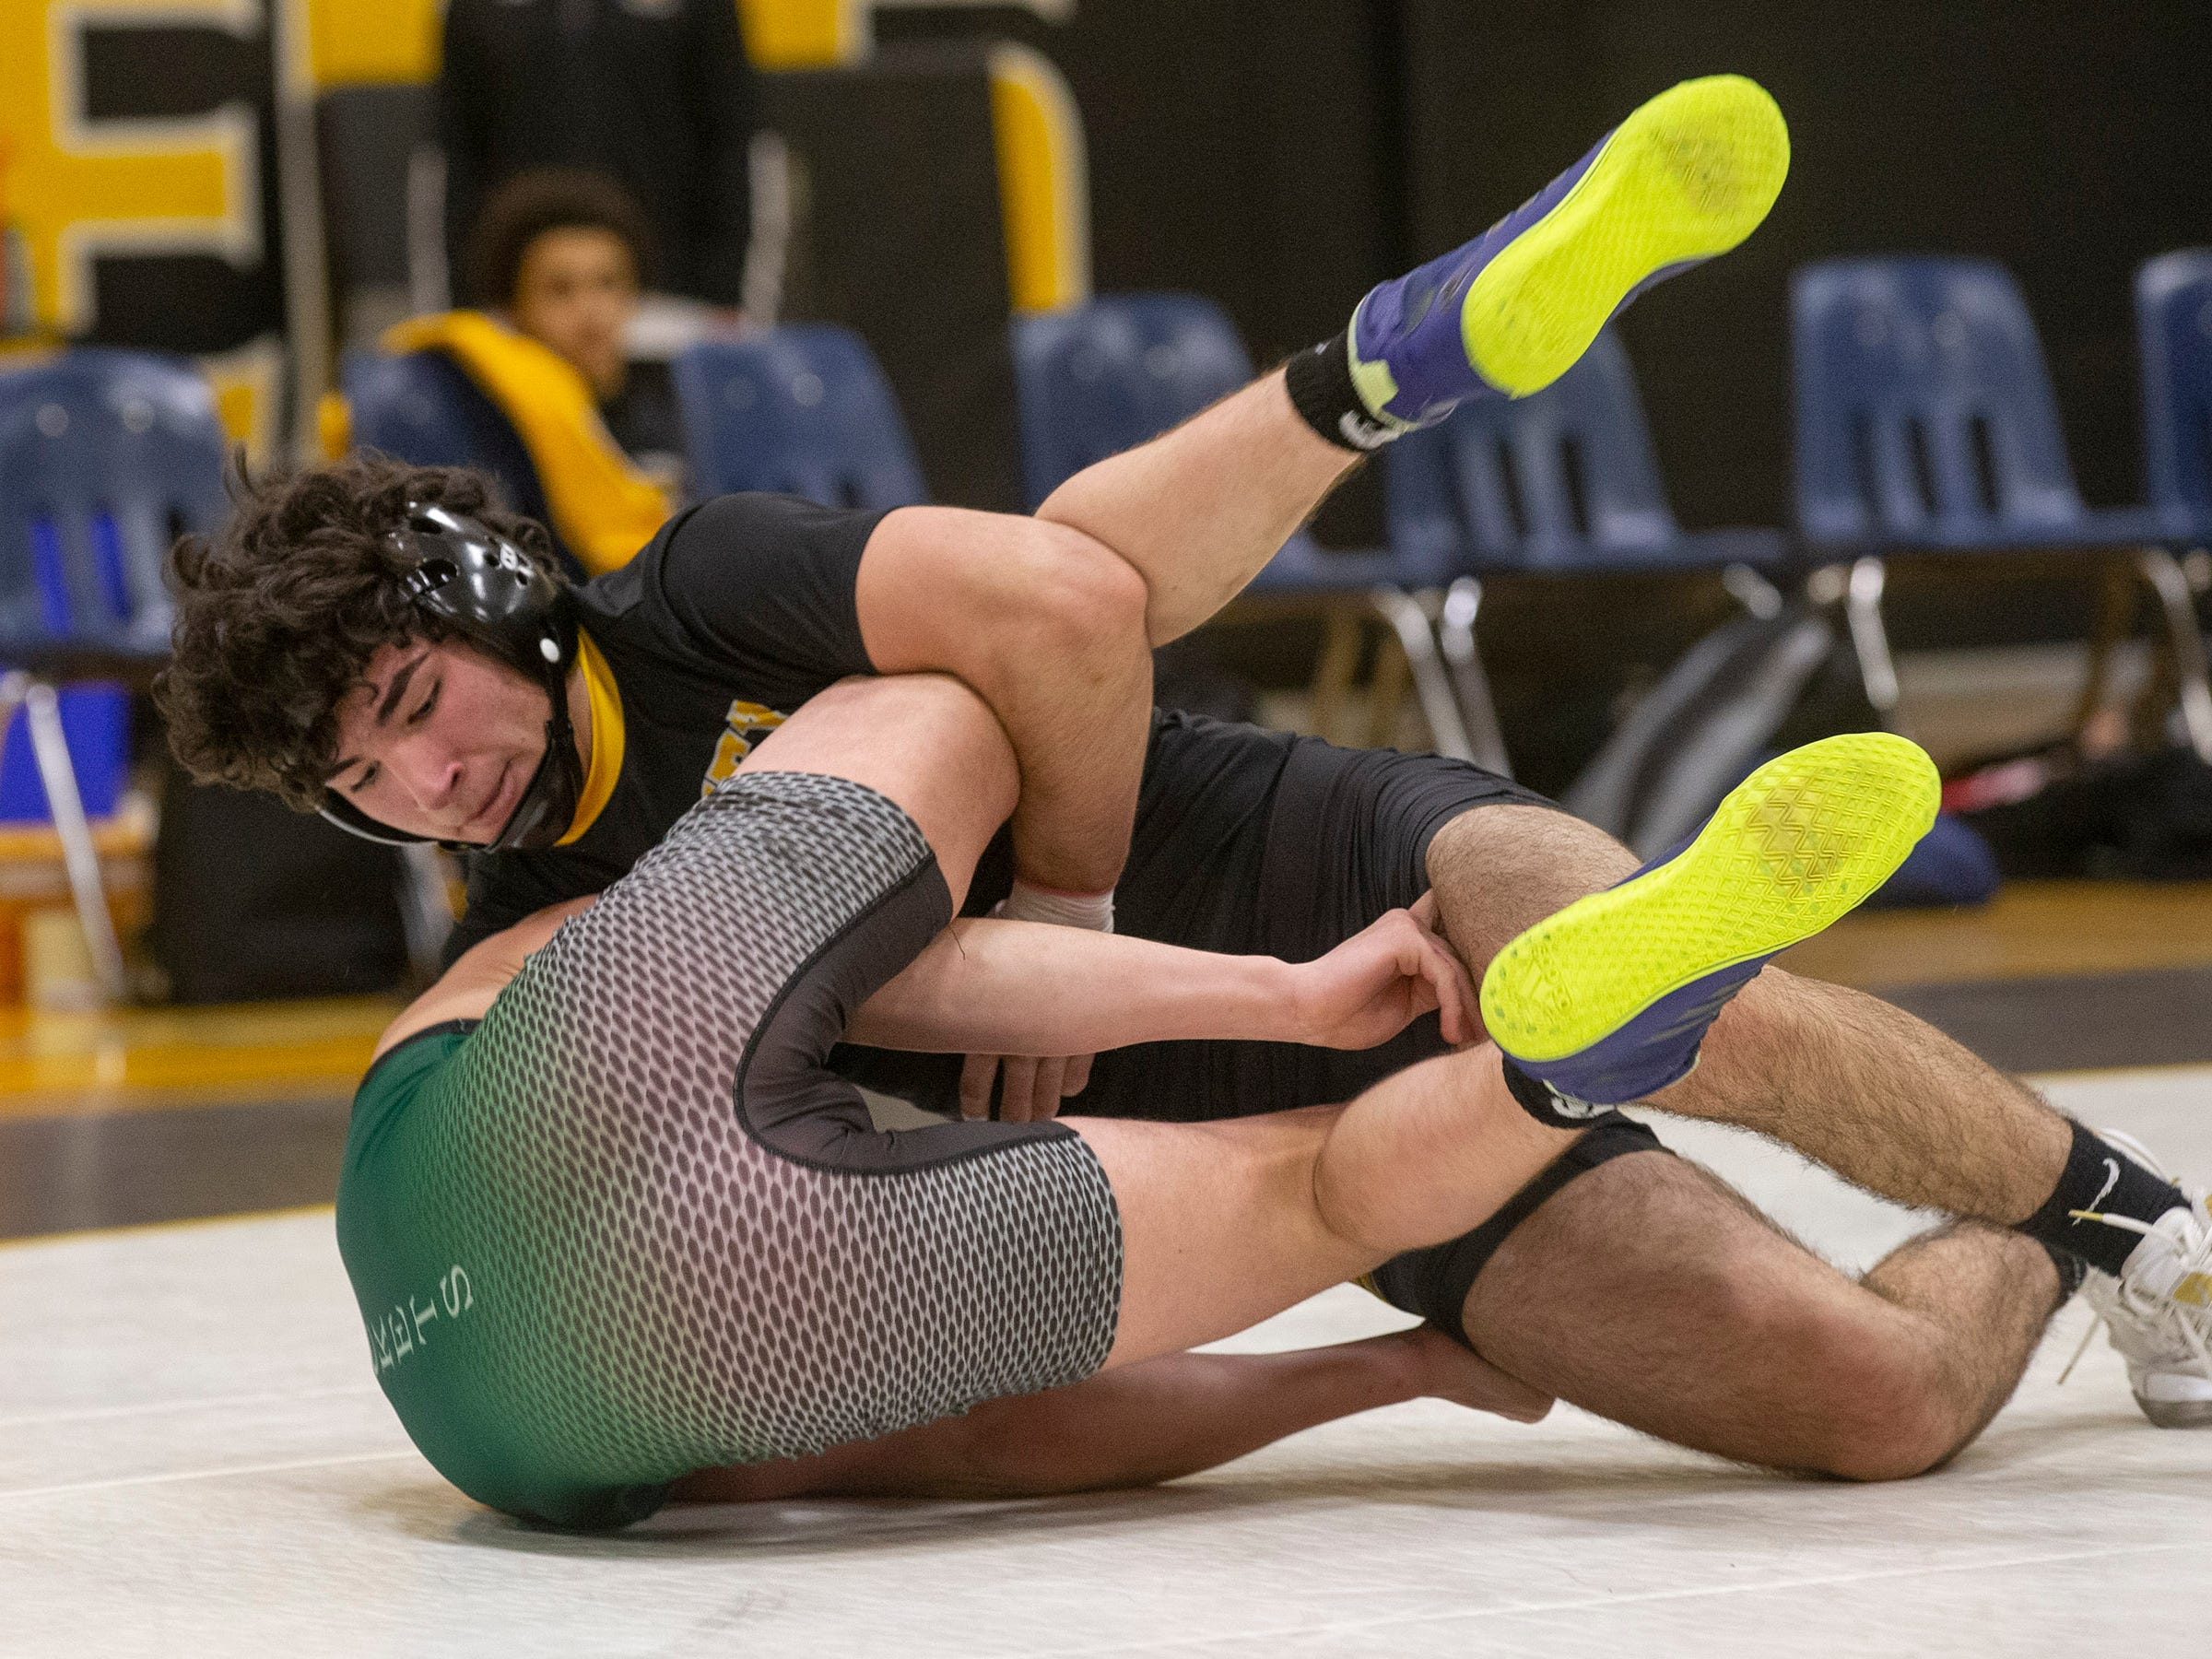 Raritan Wrestling defeats St John Vianney in Holmdel, NJ on January 23, 2019.